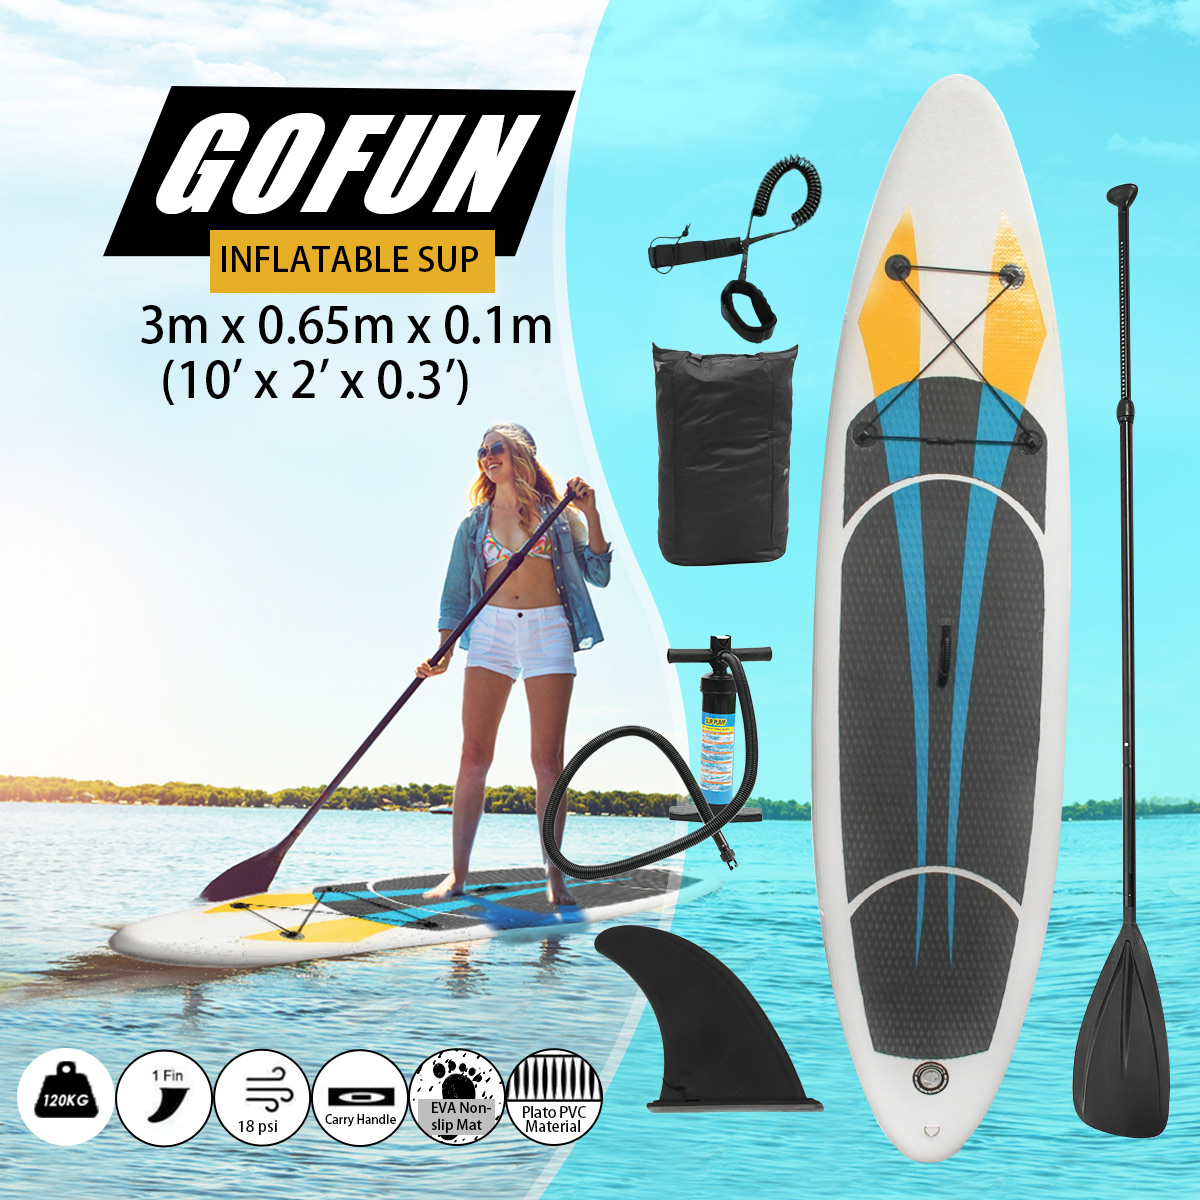 120KG 10FT SUP Inflatable Surfing Board Soft Surf Stand Up Paddle Board inflatable surf board sup paddle boat shoulder bag carry bag for inflatable boat kayak sup board stand up paddle surfing board pump oar dinghy raft surf board a05011